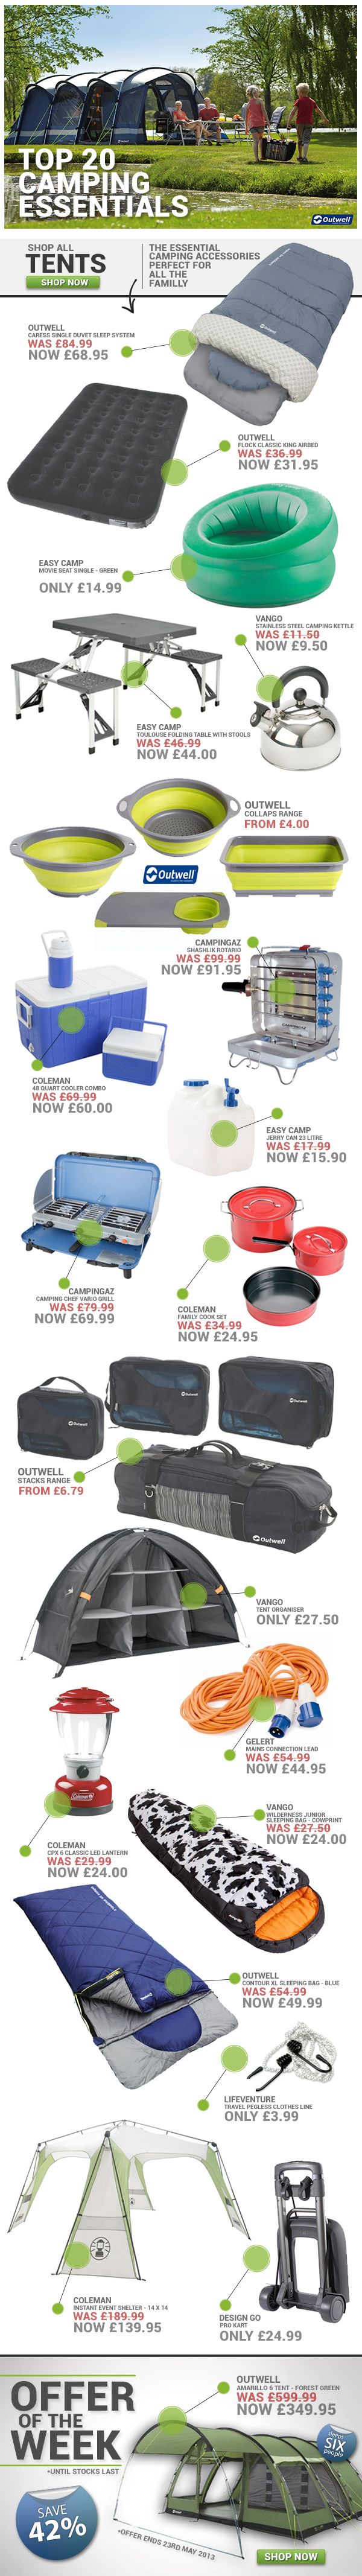 Top 20 Camping Essentials from www.simplyhike.co.uk Wish I could find that organizer here in US.. omg I want the shelf!!!